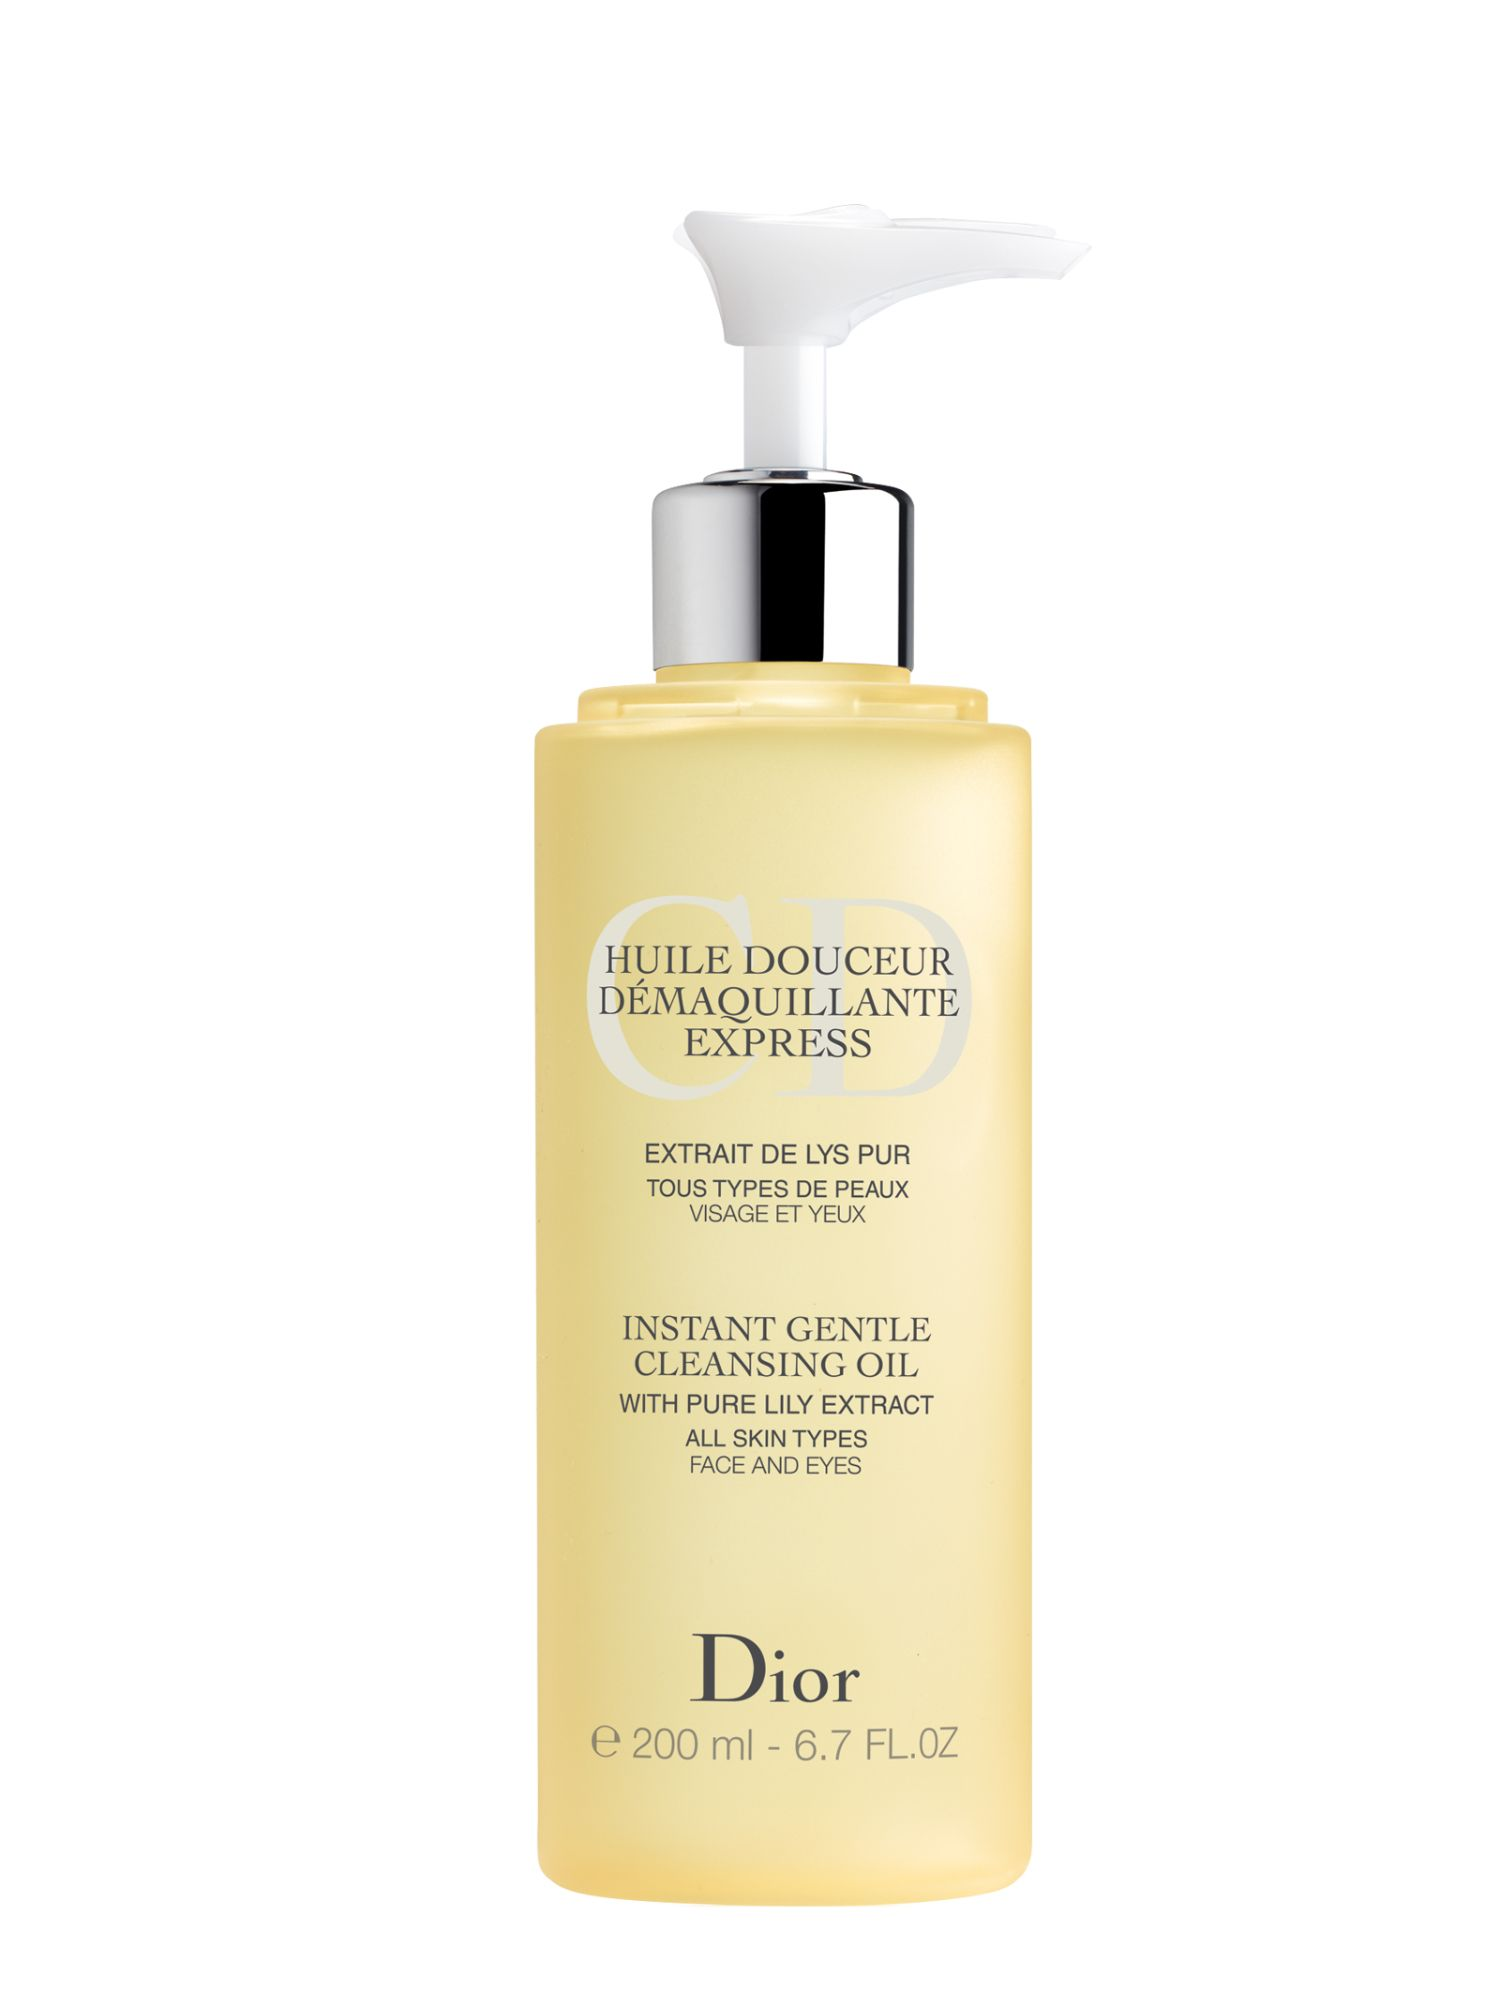 Dior Instant Gentle Clansing Oil 200ml